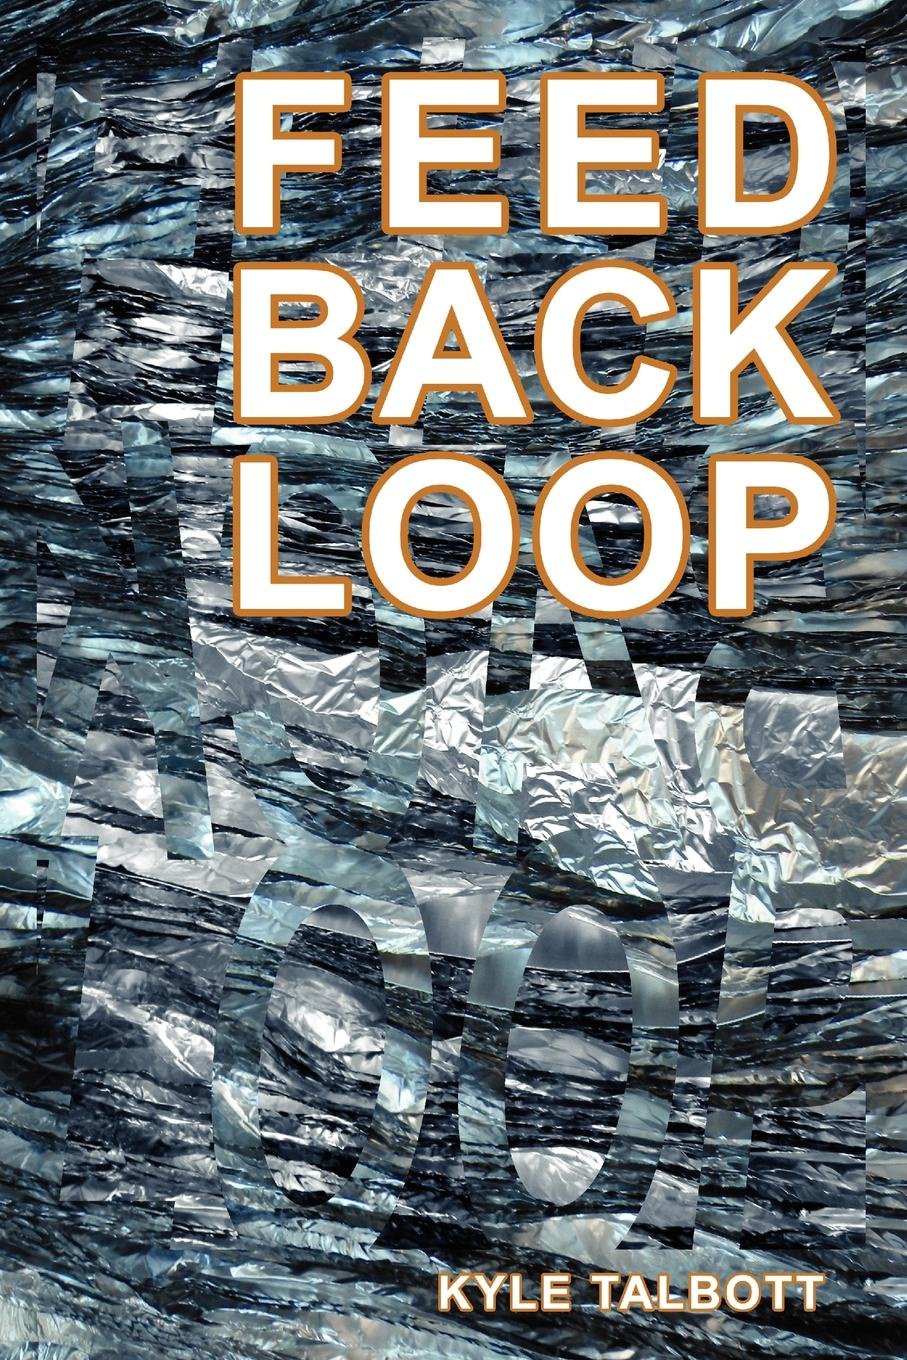 Kyle Talbott Feedback Loop. Designing Complex Architecture james eckler f language of space and form generative terms for architecture